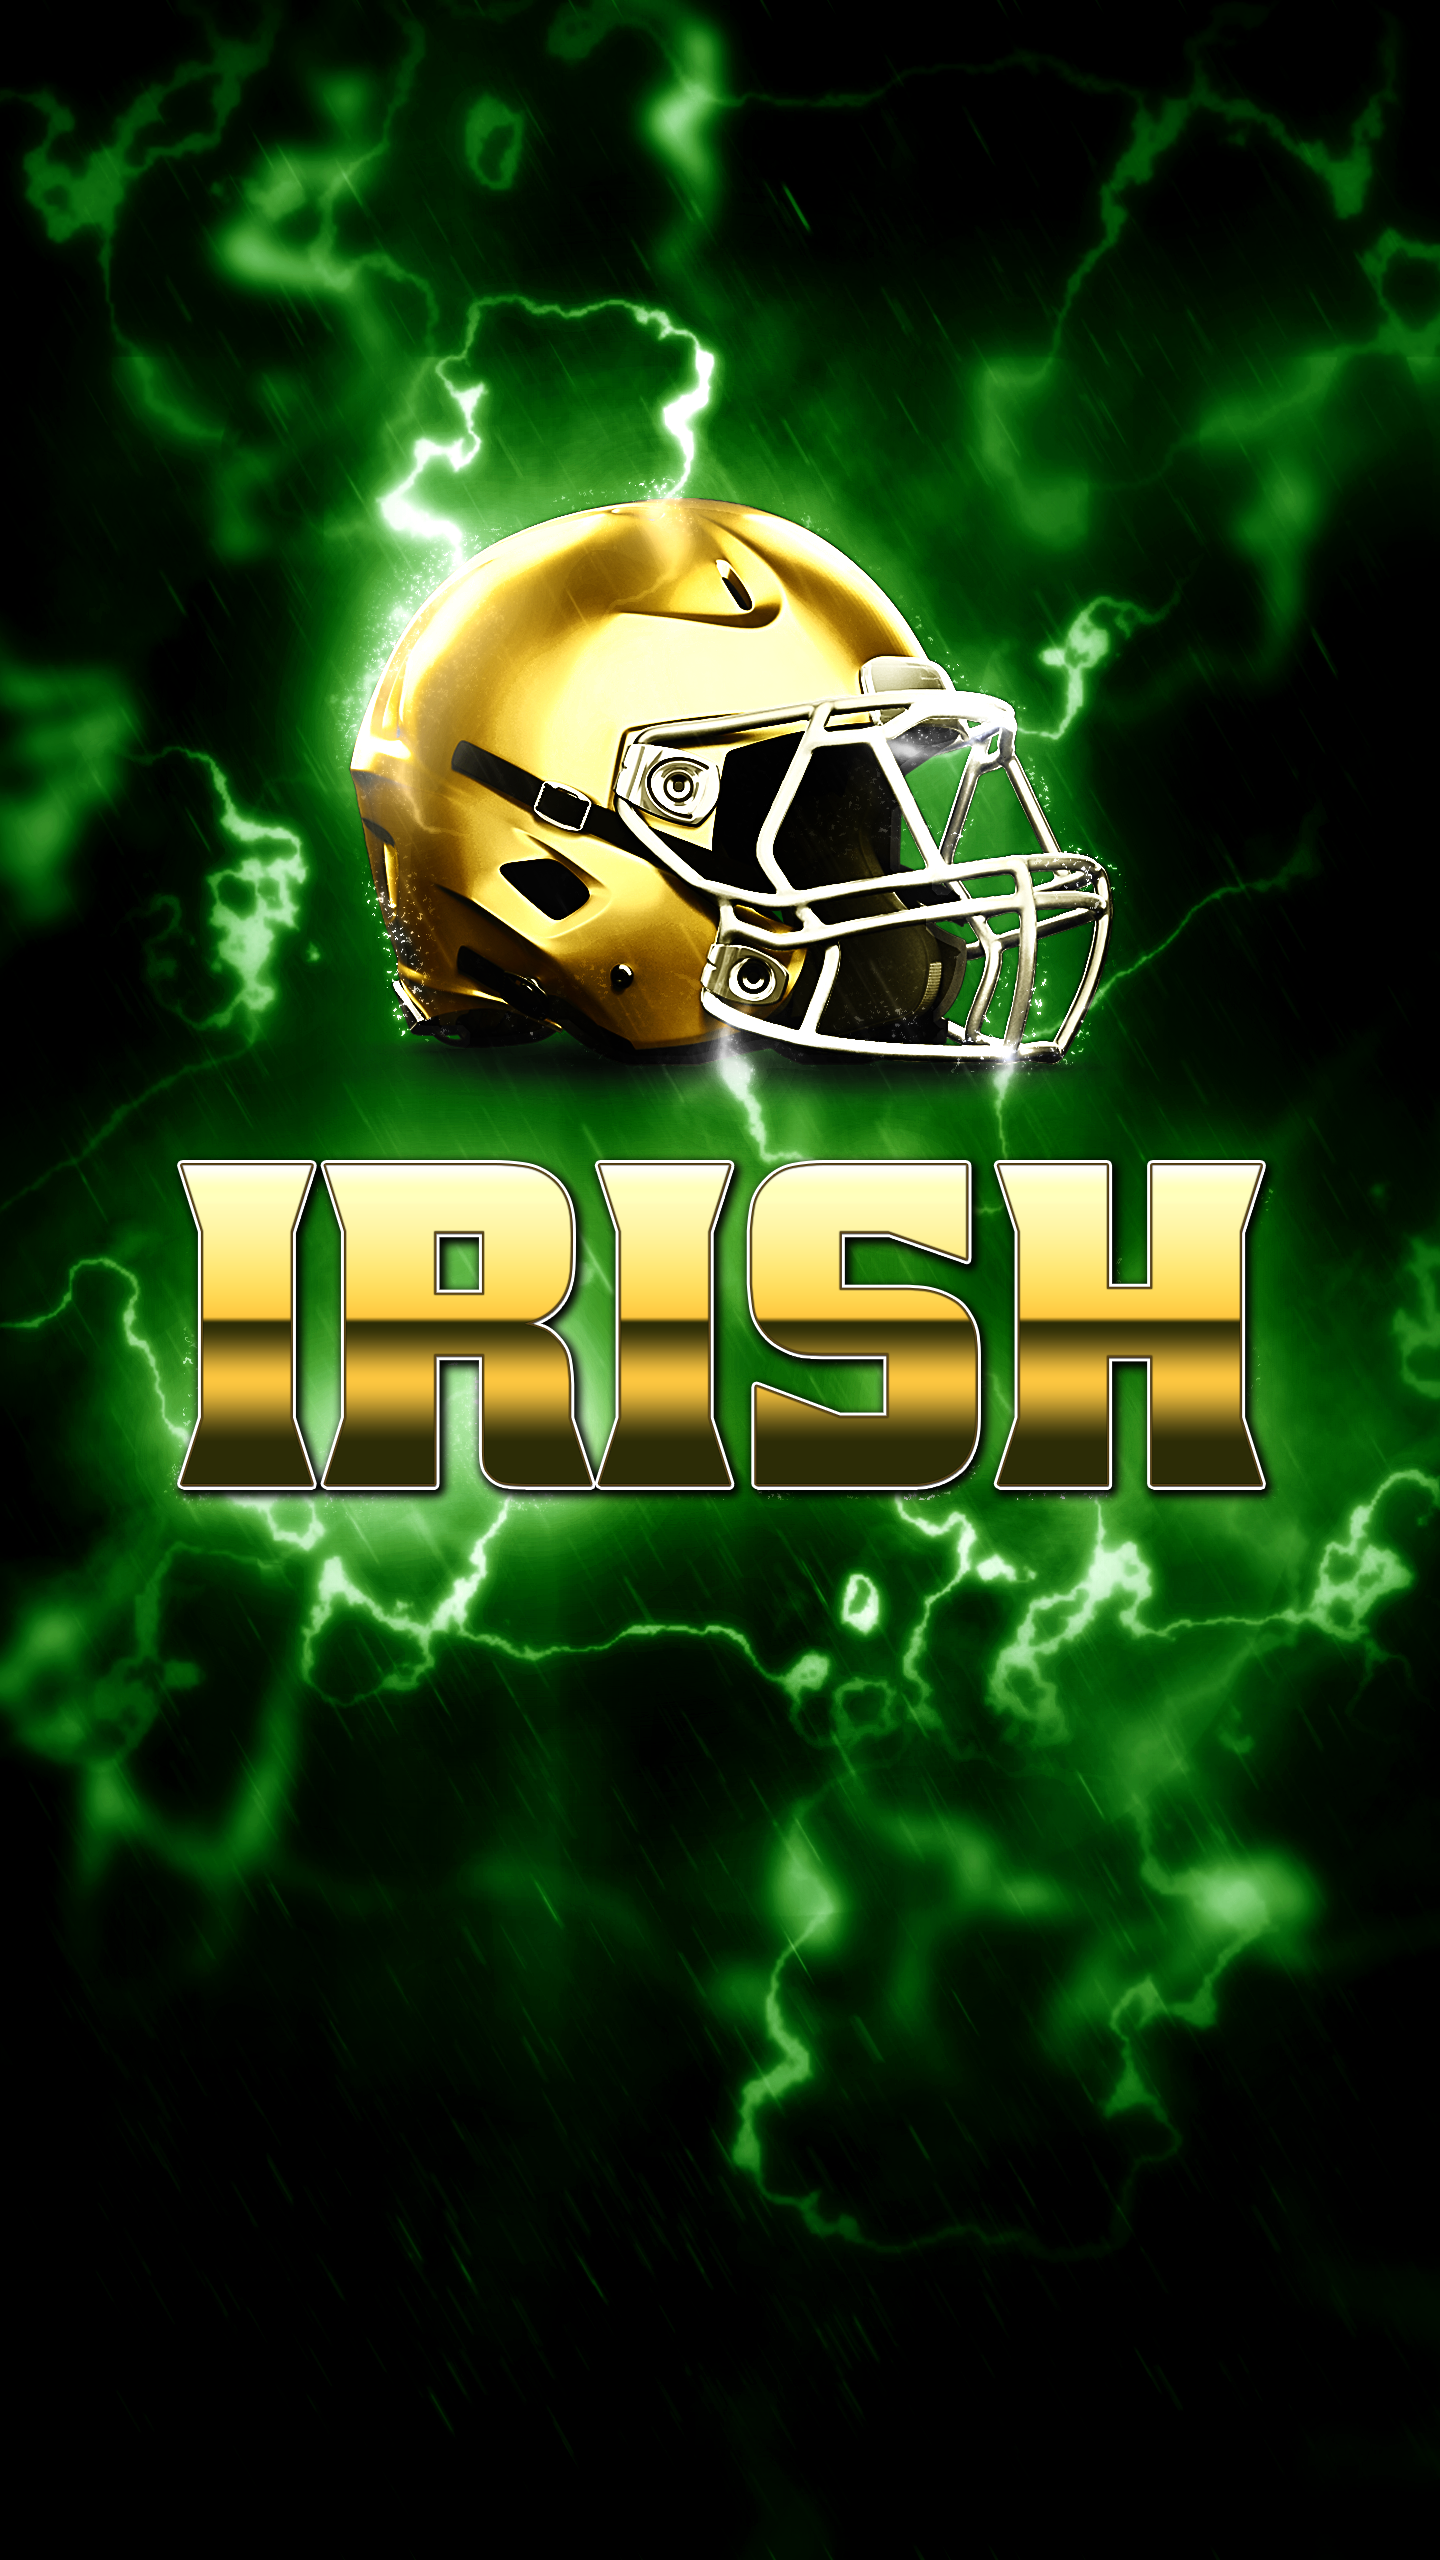 Notre dame iphone android wallpaper for your smart phone - Notre dame football wallpaper ...